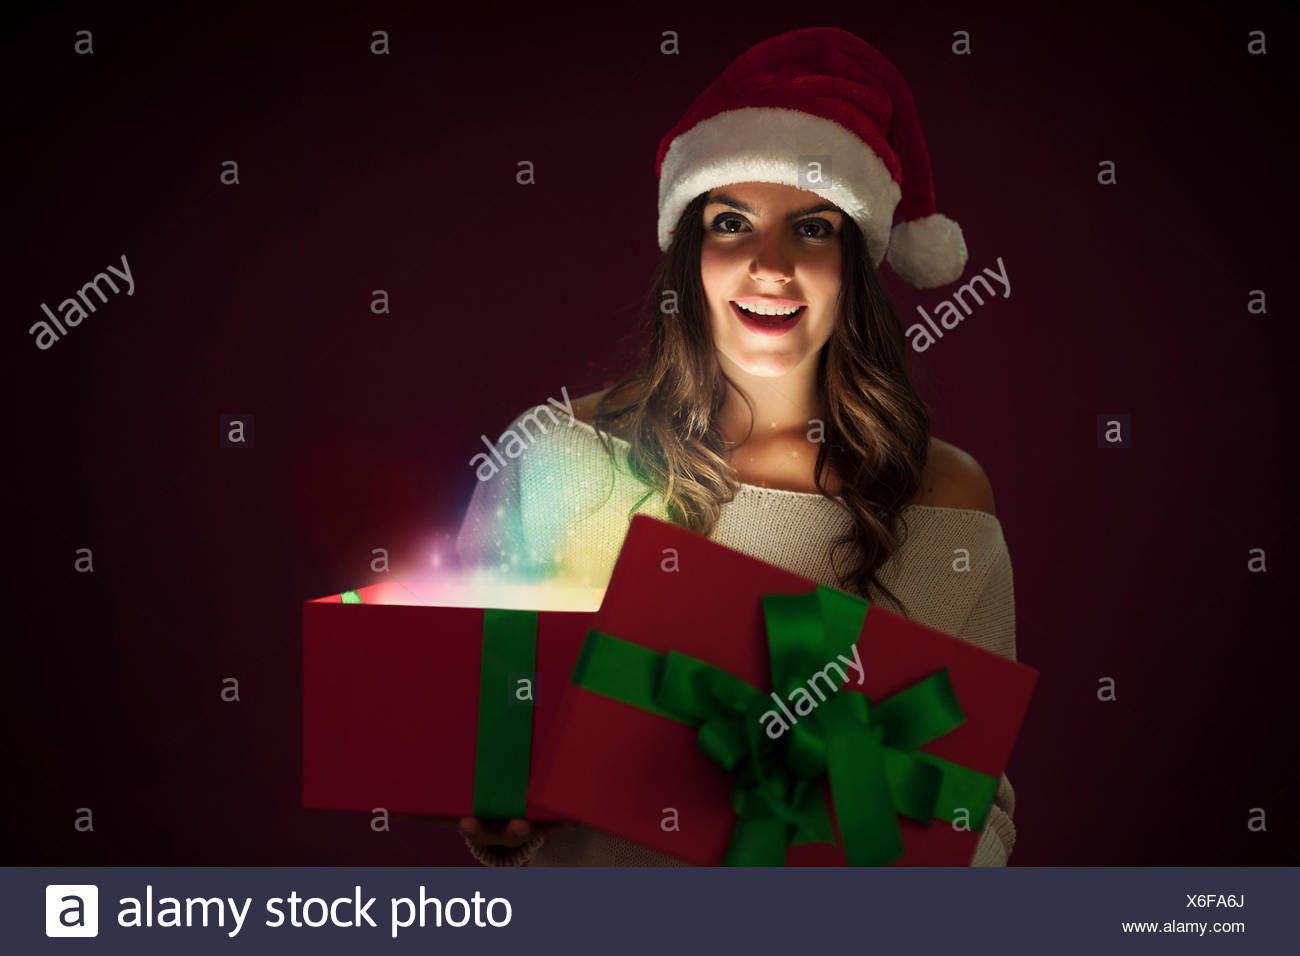 Woman with Santa hat opening magic gift Debica, Poland - Stock Image